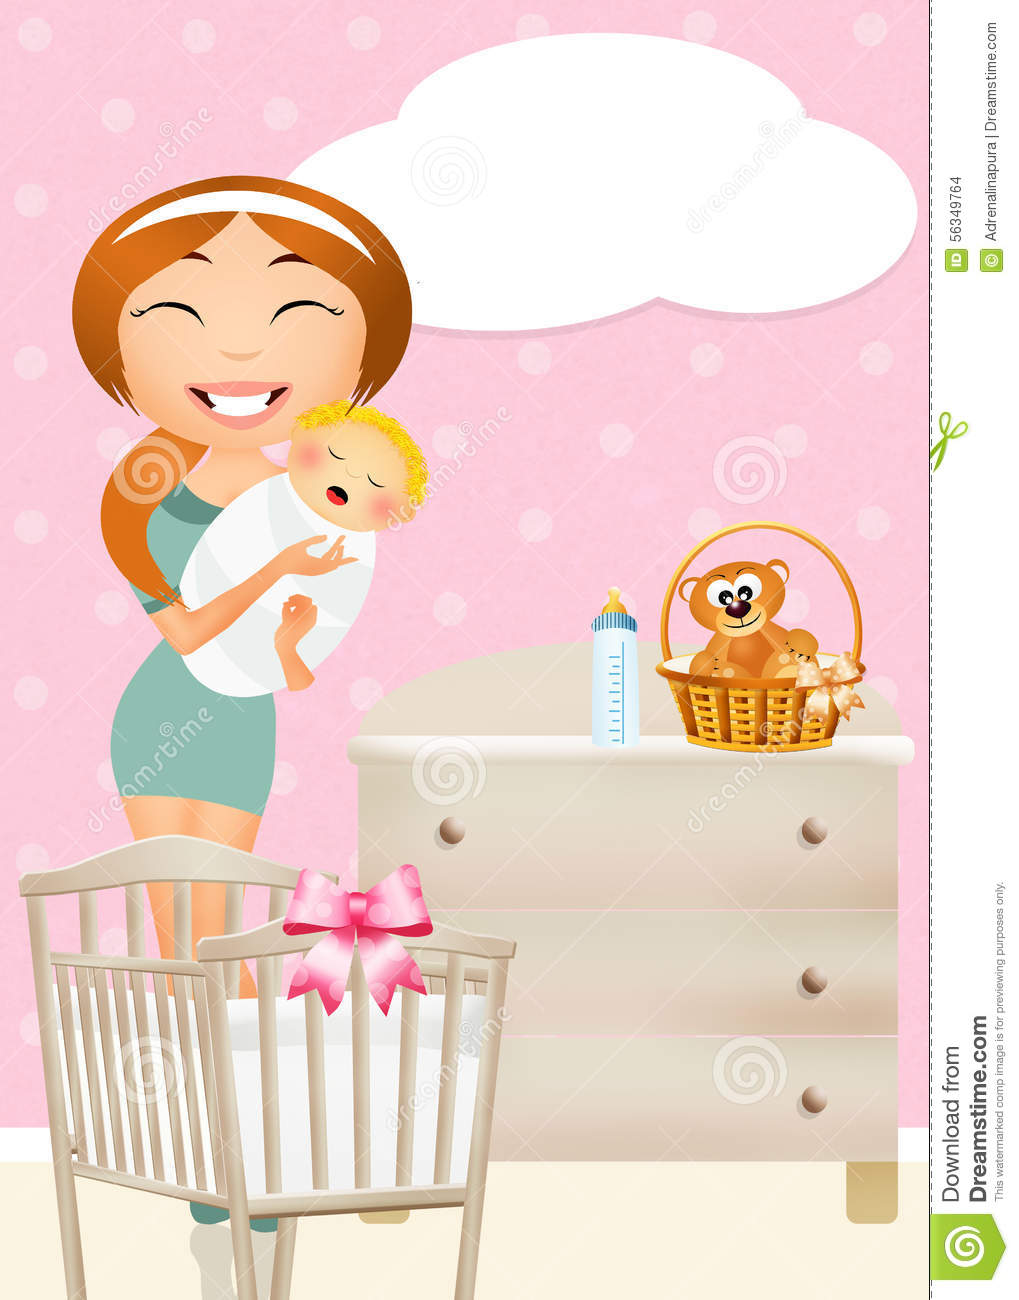 Sissy Cartoons Illustrations Amp Vector Stock Images 29